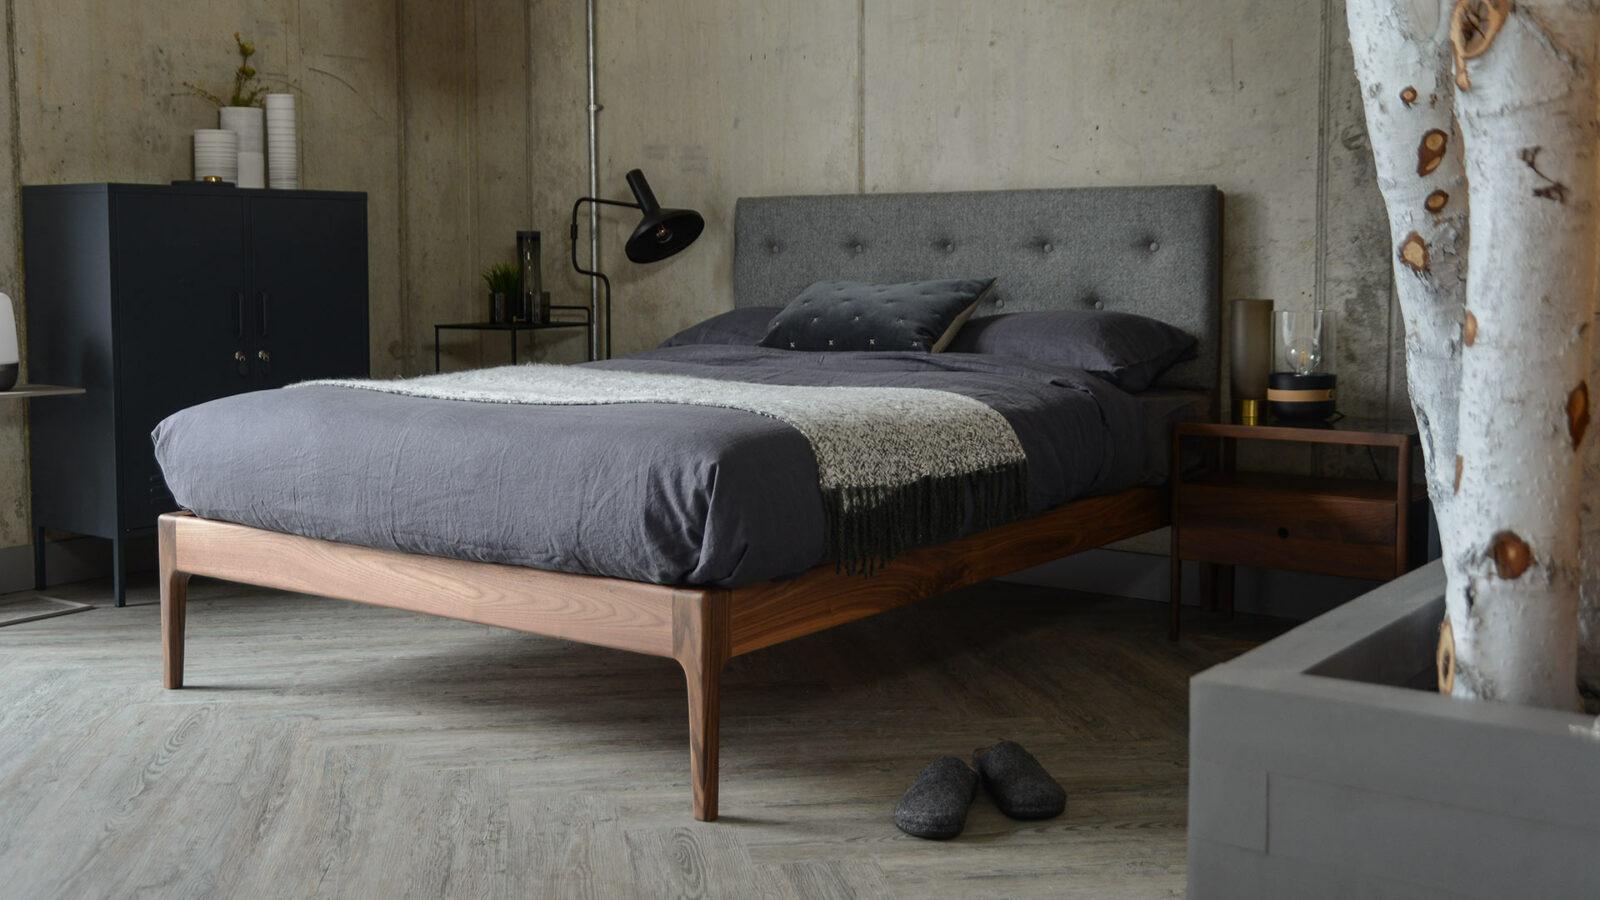 The Bloomsbury classic wooden bed with a solid walnut frame and buttoned upholstered headboard